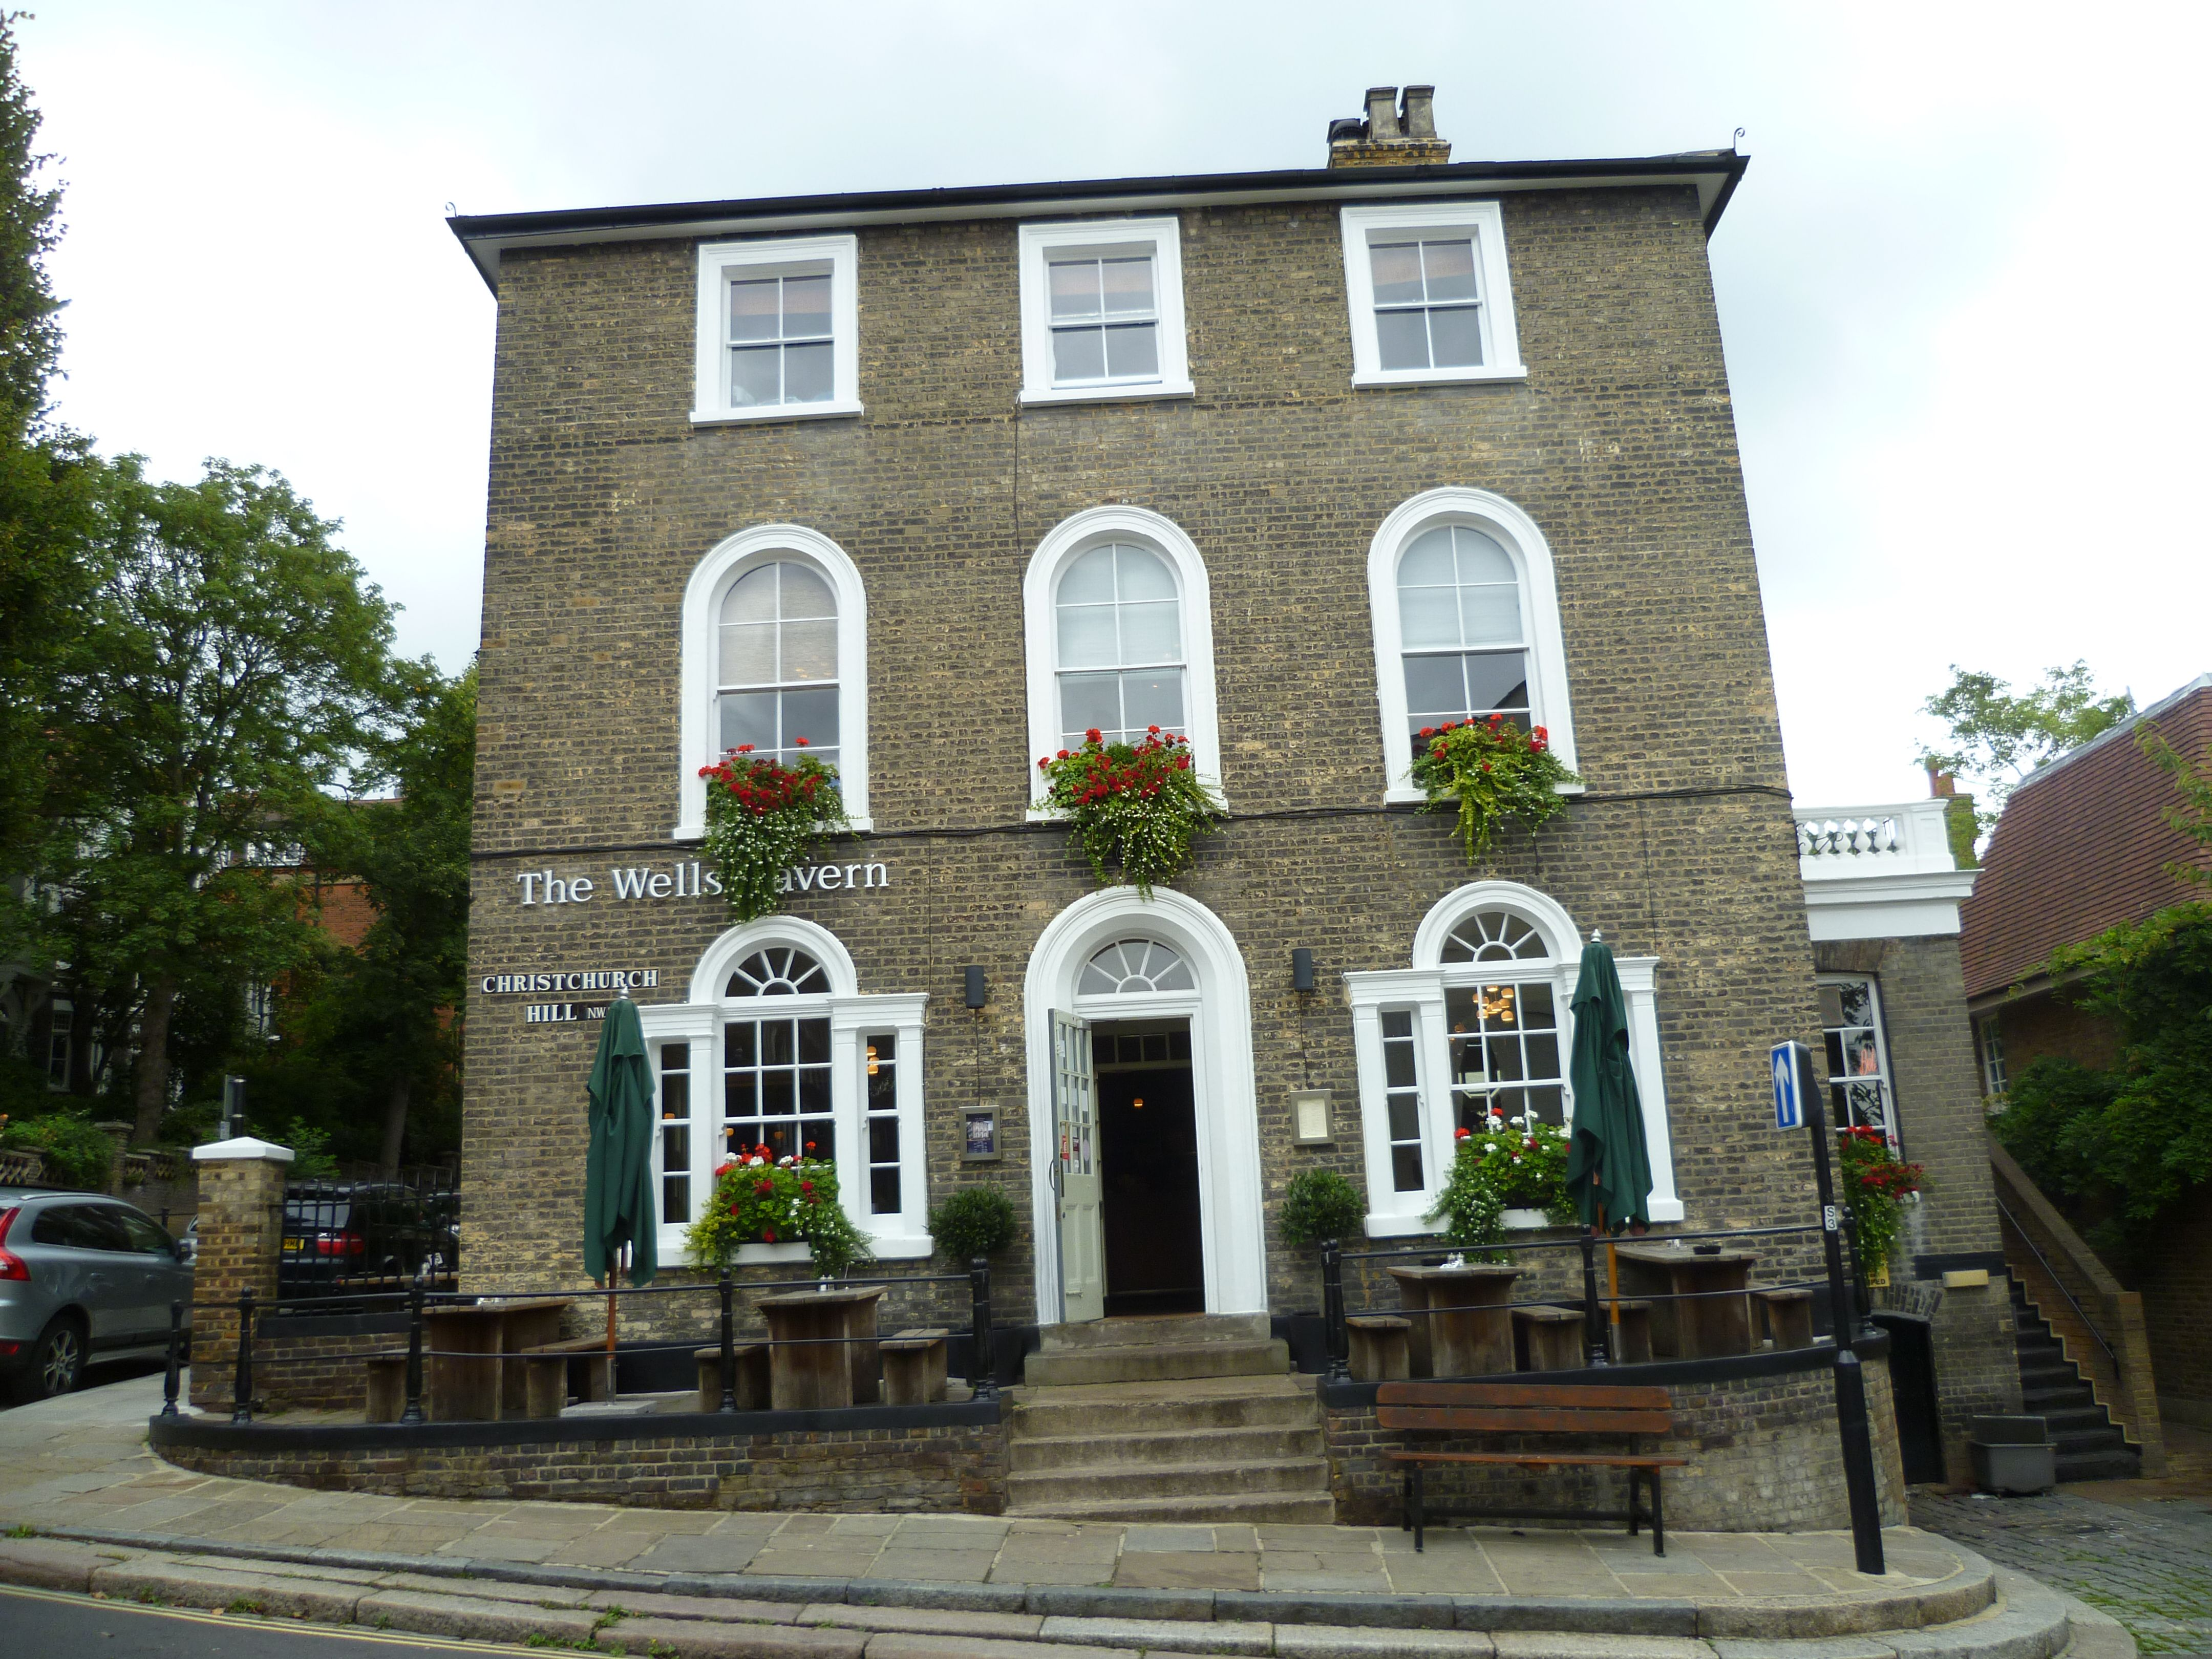 The Wells Tavern pub in the heart of picturesque Hampstead is a great place to stop by for a drink and a lovely pub lunch! #Hampstead #London #pub #londonpubs #publunch #seelondon #visitlondon #walklondon #londonvacation #vacation